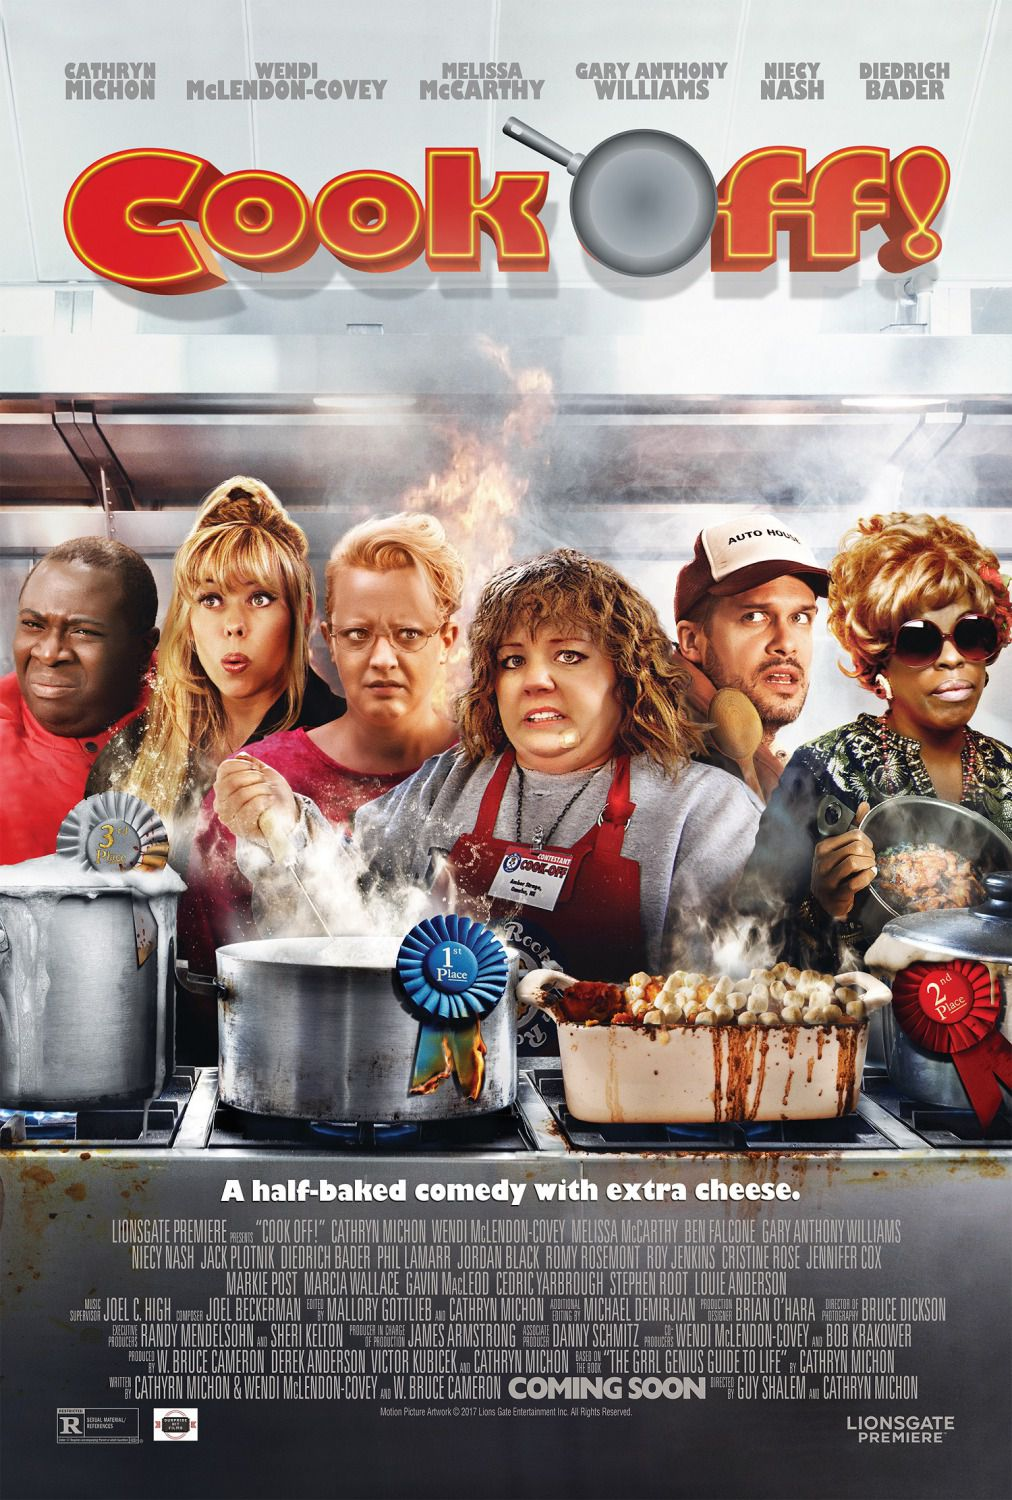 Cook Off - Melissa McCarthy - Ben Falcone - Stephen Root - Diedrich Bader - Wendy McLendon-Covey - Gary Anthony Williams - Sam Pancake - Cathryn Michon - Niecy Nash - film poster